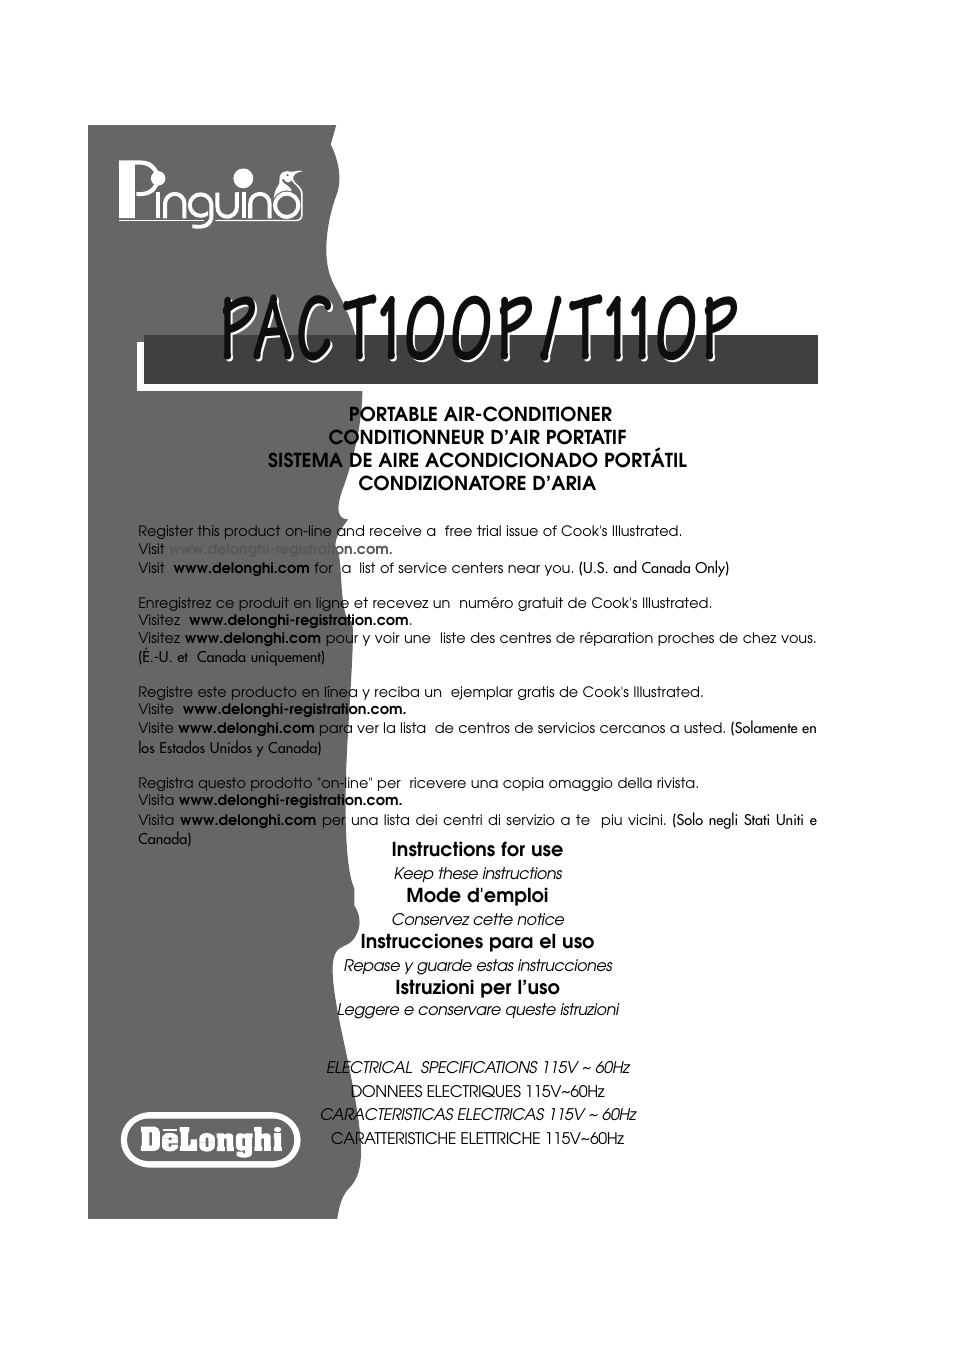 DeLonghi PINGUINO PAC T110P User Manual   19 pages   Also for: PINGUINO PAC  T100P